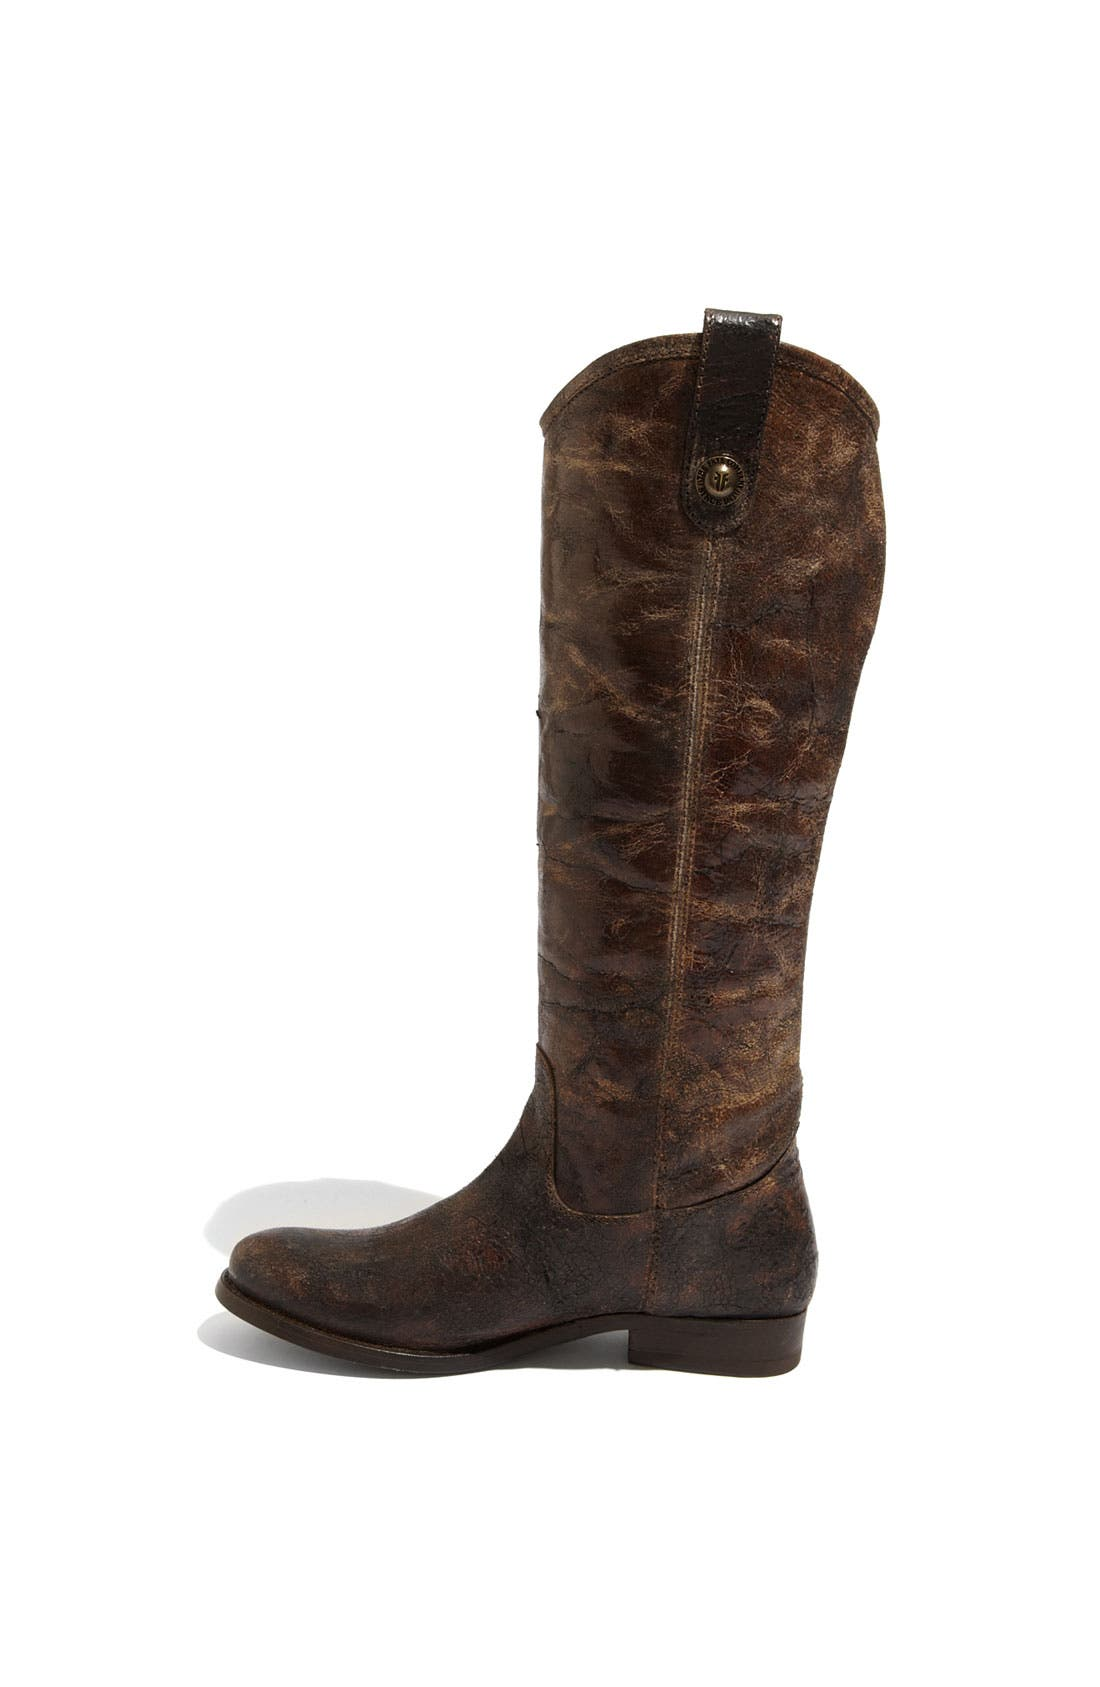 'Melissa Button' Leather Riding Boot,                             Alternate thumbnail 137, color,